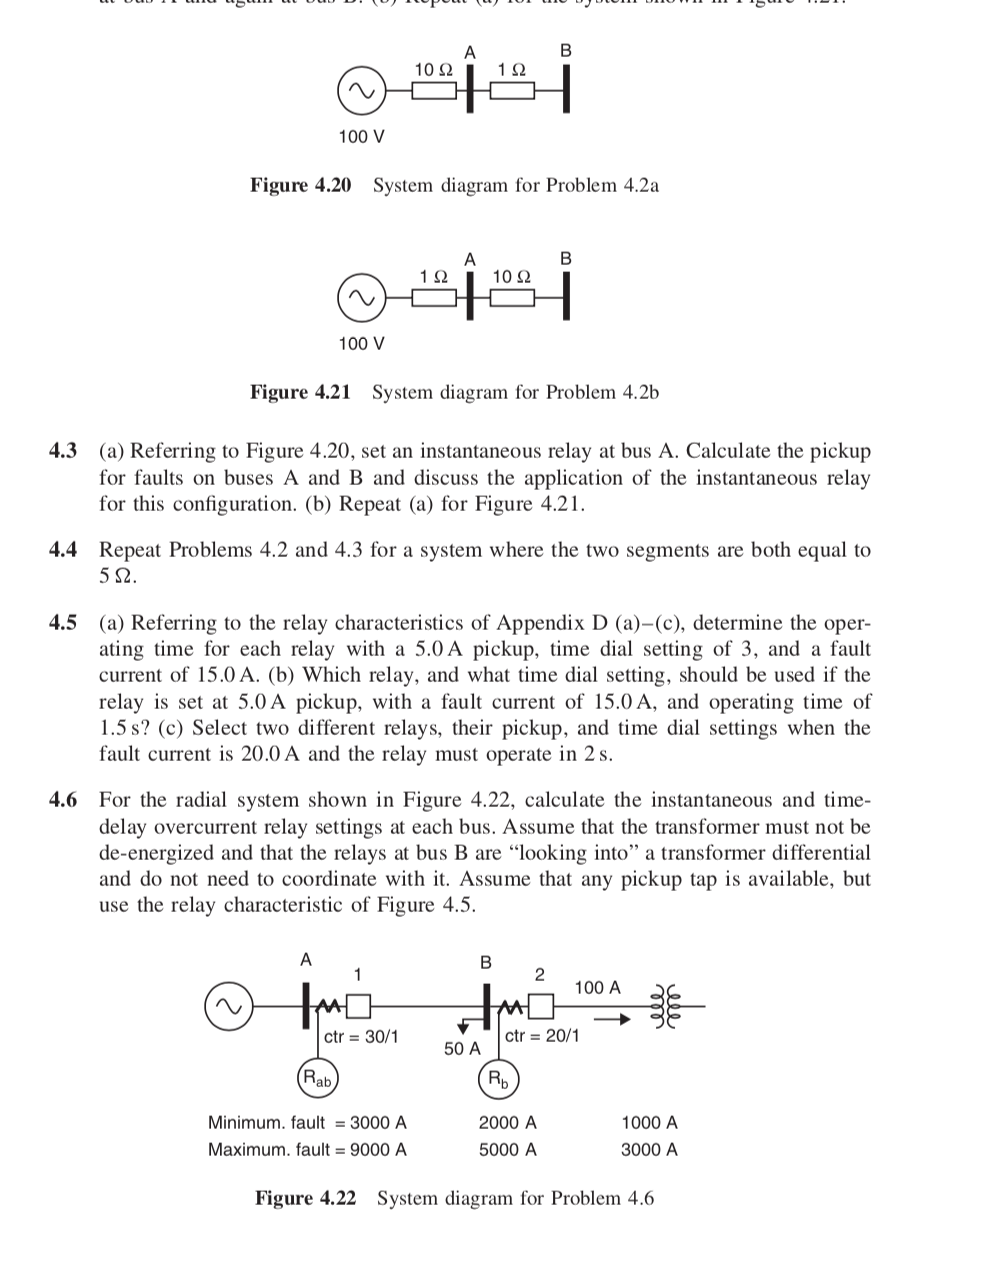 """1012 112 100 V Figure 4.20 System diagram for Problem 4.2a 1 2 10 2 100 V Figure 4.21 System diagram for Problem 4.2b 4.3 (a) Referring to Figure 4.20, set an instantaneous relay at bus A. Calculate the pickup for faults on buses A and B and discuss the application of the instantaneous relay for this configuration. (b) Repeat (a) for Figure 4.21 4.4 Repeat Problems 4.2 and 4.3 for a system where the two segments are both equal to 4.5 (a) Referring to the relay characteristics of Appendix D (a)-(c), determine the oper- ating time for each relay with a 5.0A pickup, time dial setting of 3, and a fault current of 15.0 A. (b) Which relay, and what time dial setting, should be used if the relay is set at 5.0 A pickup, with a fault current of 15.0 A, and operating time of 1.5 s? (c) Select two different relays, their pickup, and time dial settings when the fault current is 20.0 A and the relay must operate in 2s. 4.6 For the radial system shown in Figure 4.22, calculate the instantaneous and time- delay overcurrent relay settings at each bus. Assume that the transformer must not be de-energized and that the relays at bus B are """"looking into"""" a transformer differential and do not need to coordinate with it. Assume that any pickup tap is available, but use the relay characteristic of Figure 4.5. 2 100 A ctr 30/1 50 A ctr-20/1 Minimum.fault 3000 A Maximum. fault 9000 A 2000 A 5000 A 1000 A 3000 A Figure 4.22 System diagram for Problem 4.6"""